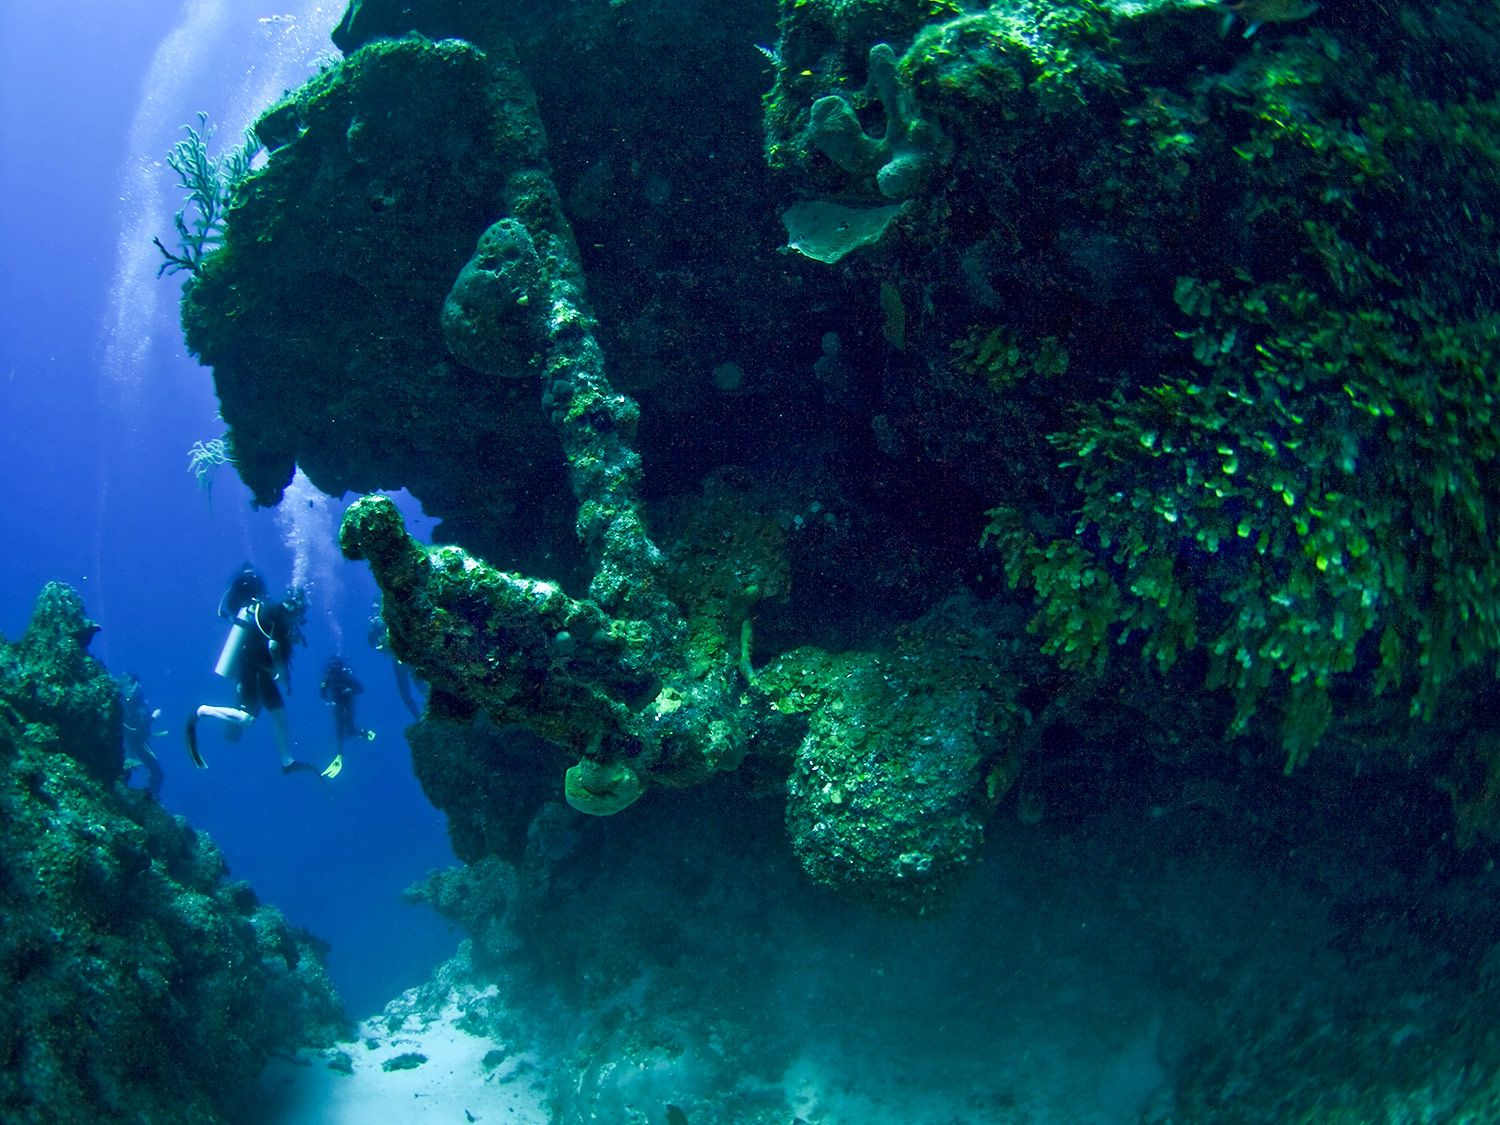 _The-Anchor-Reef-1